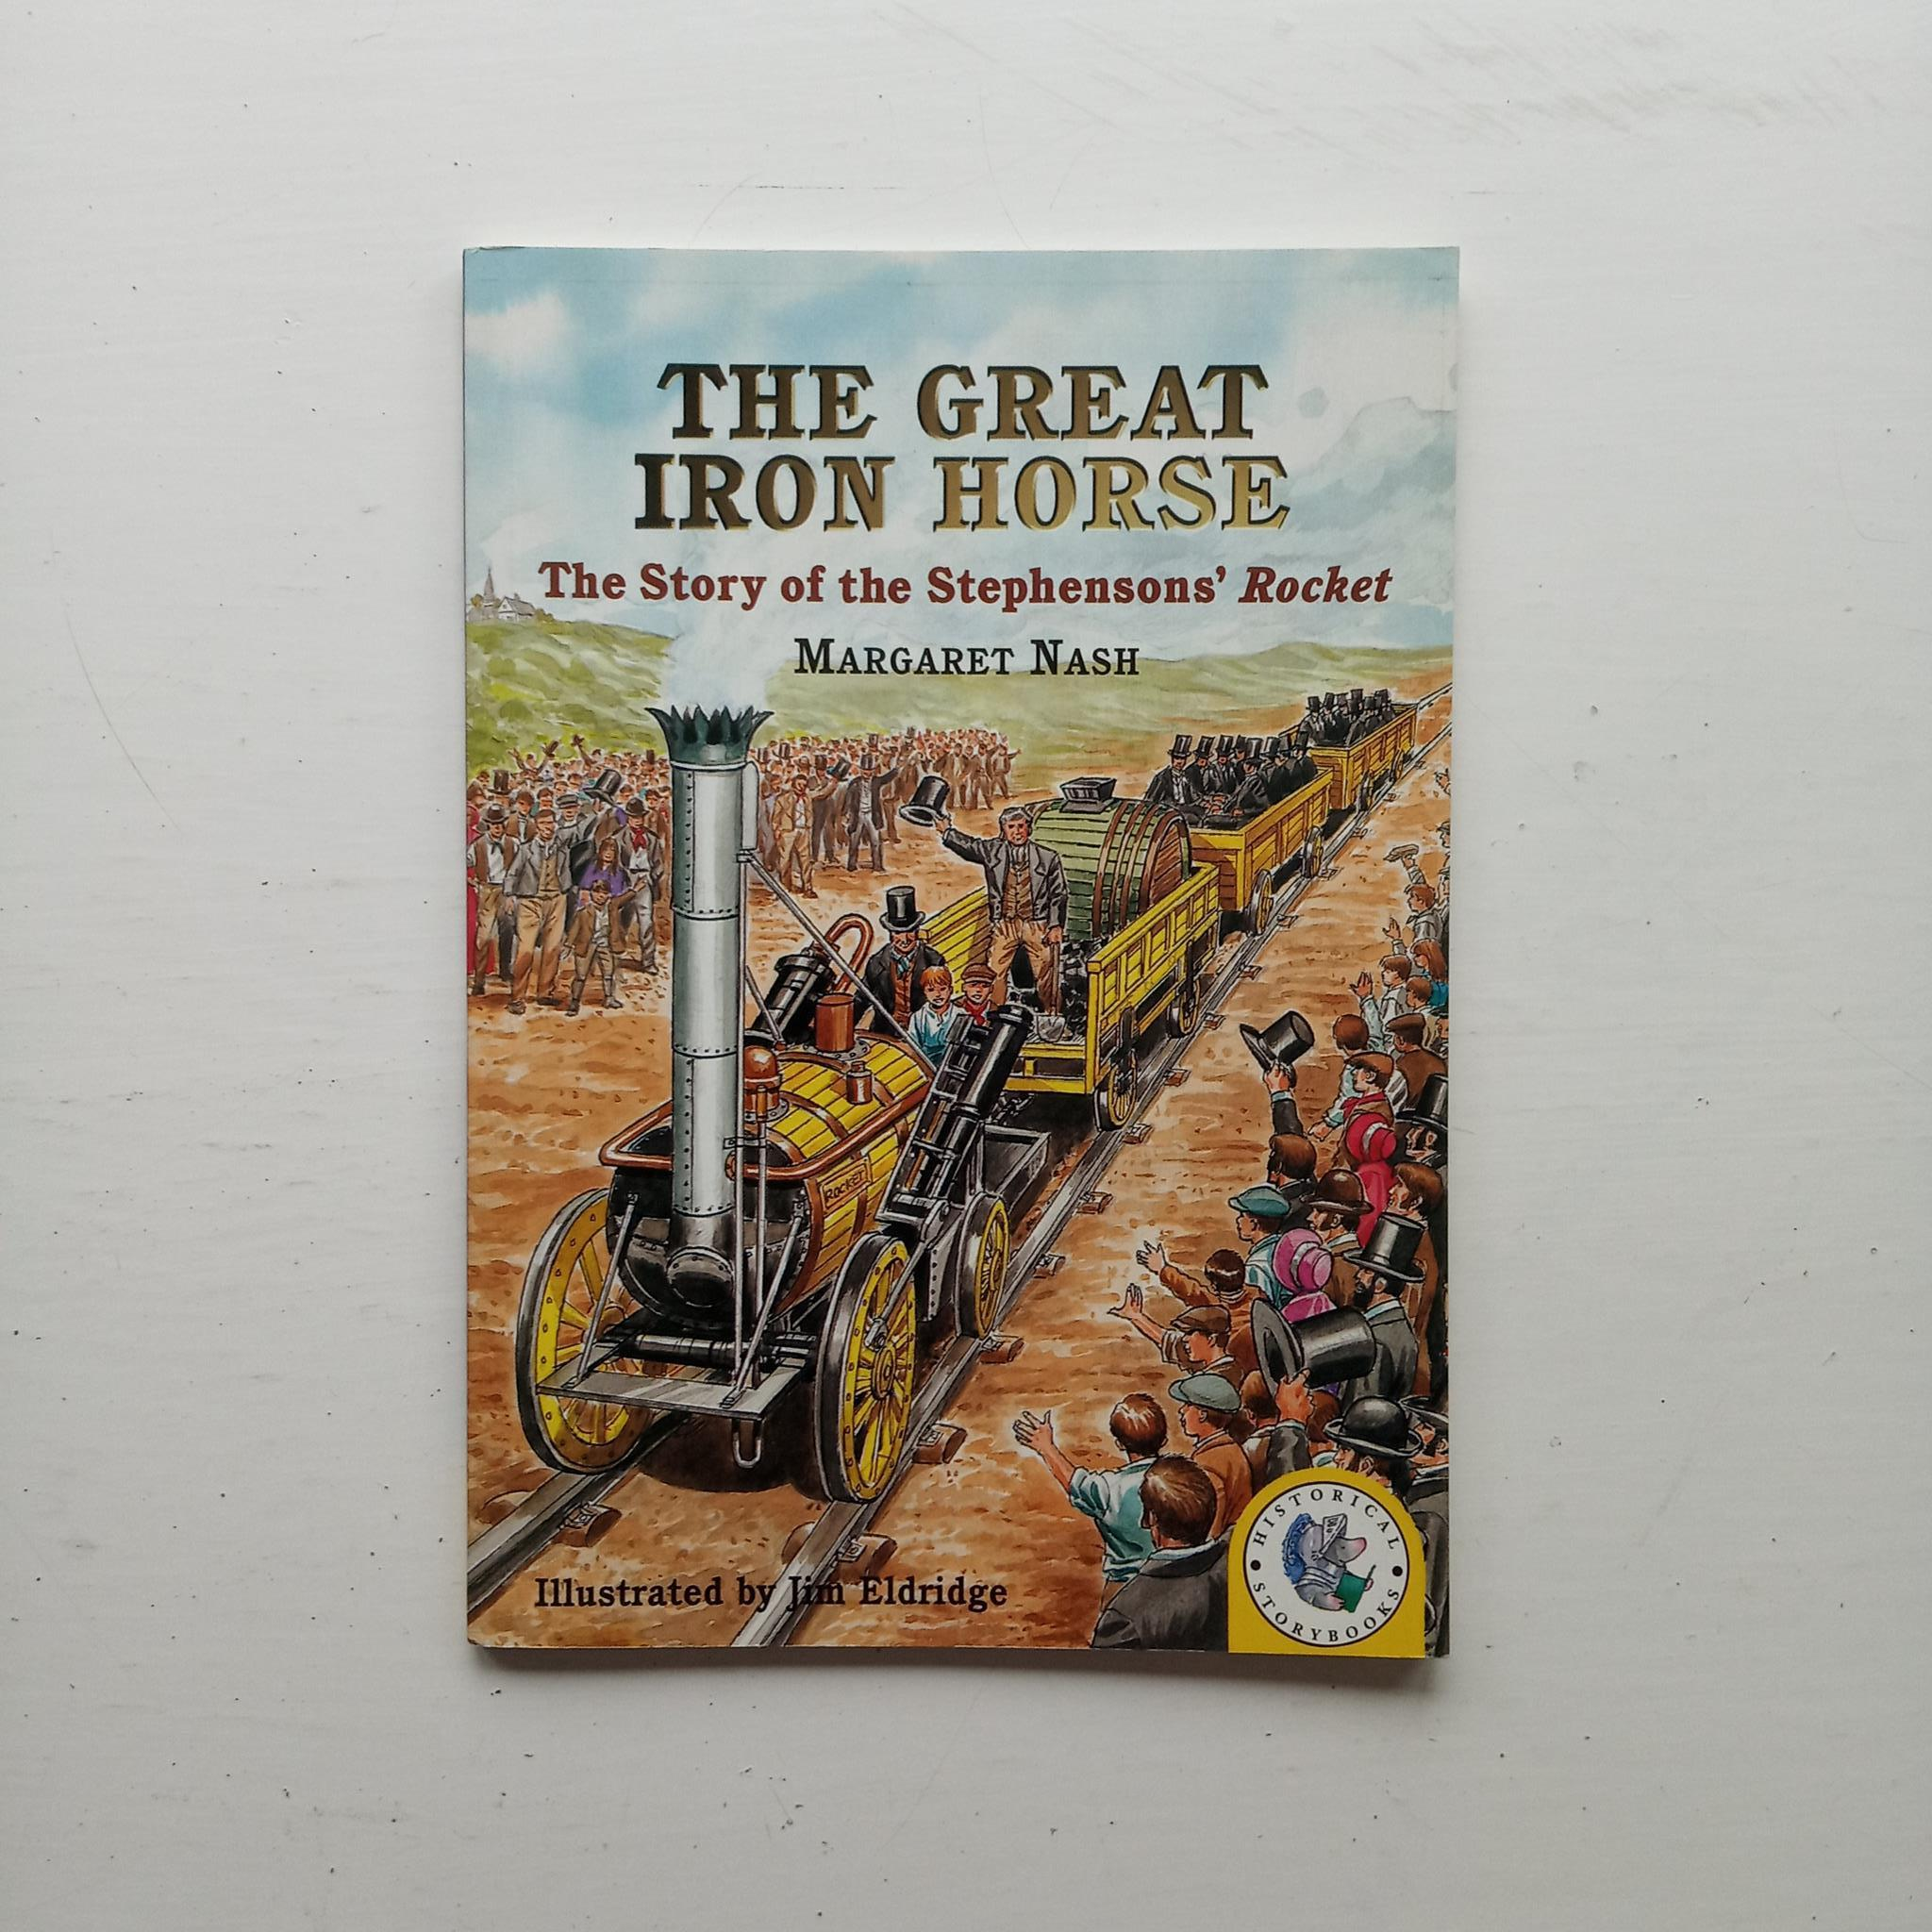 The Great Iron Horse by Margaret Nash